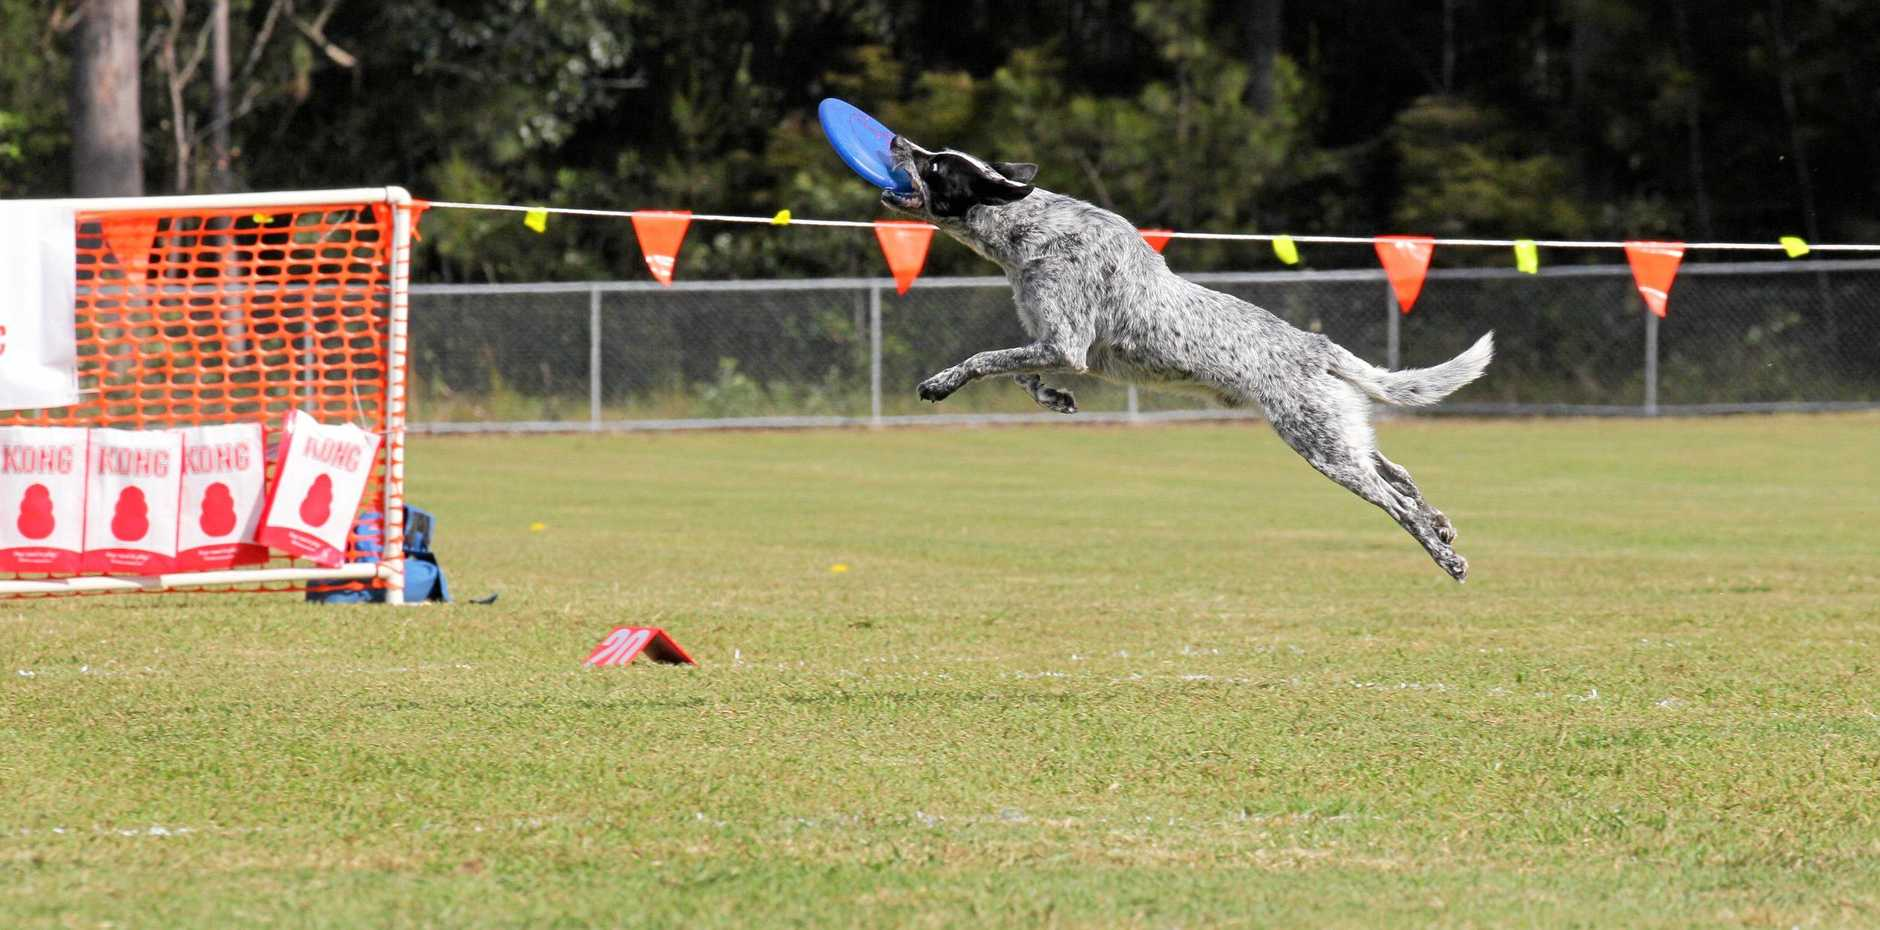 GOTCHA: Eight-year-old vorder cross Collie Toohey catching a frisbee.